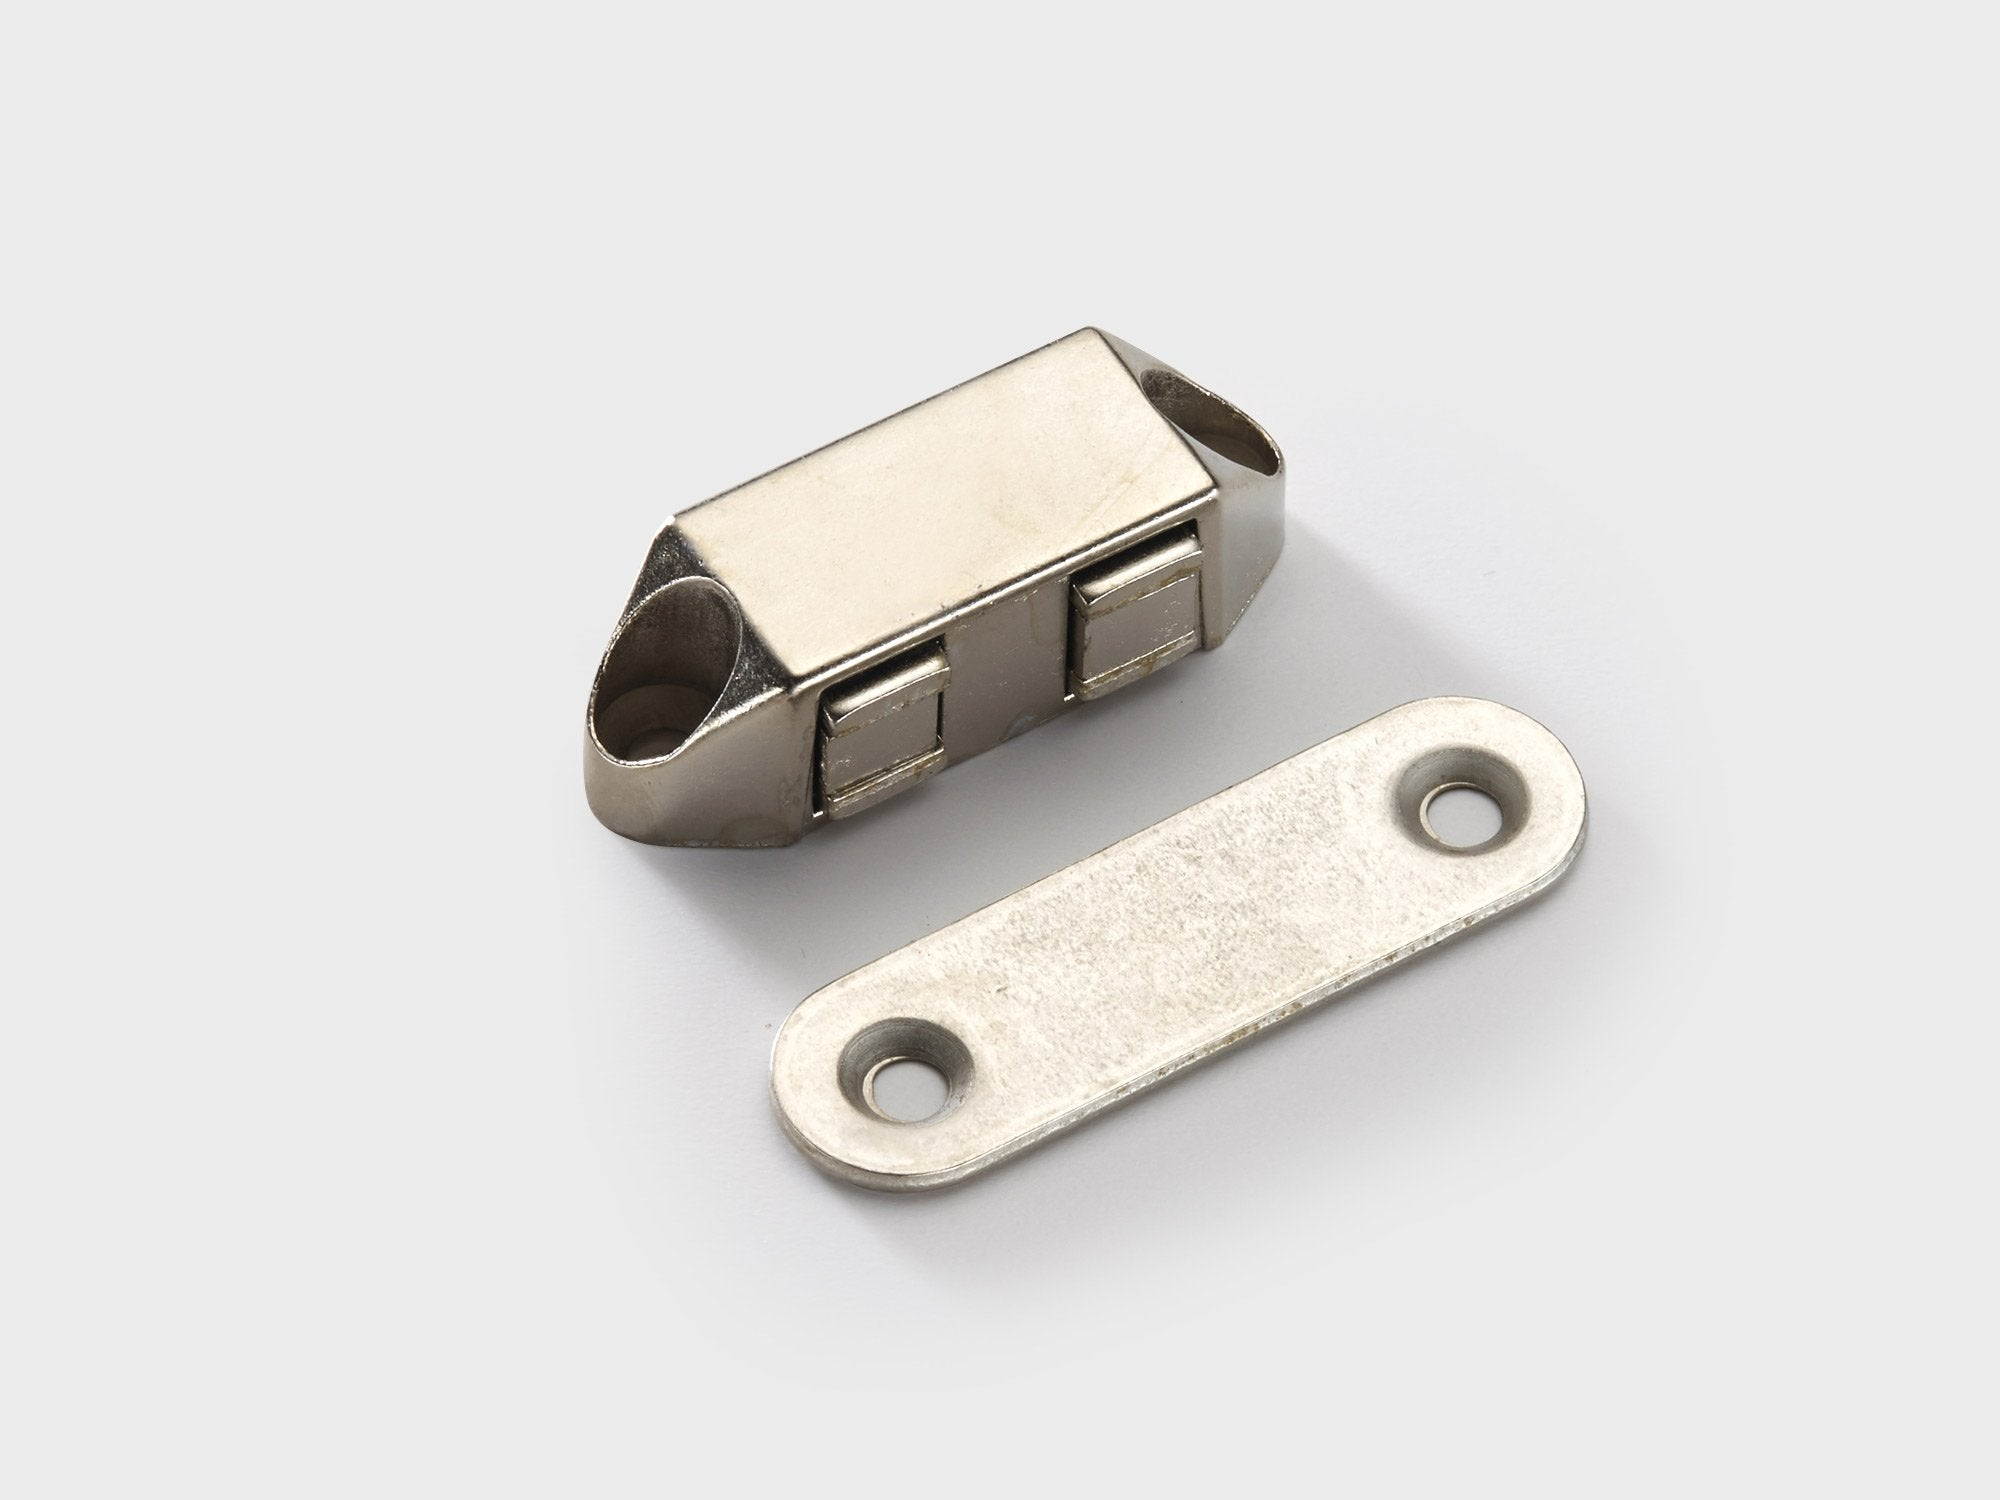 LM5103N MAGNET CATCH - Nickel